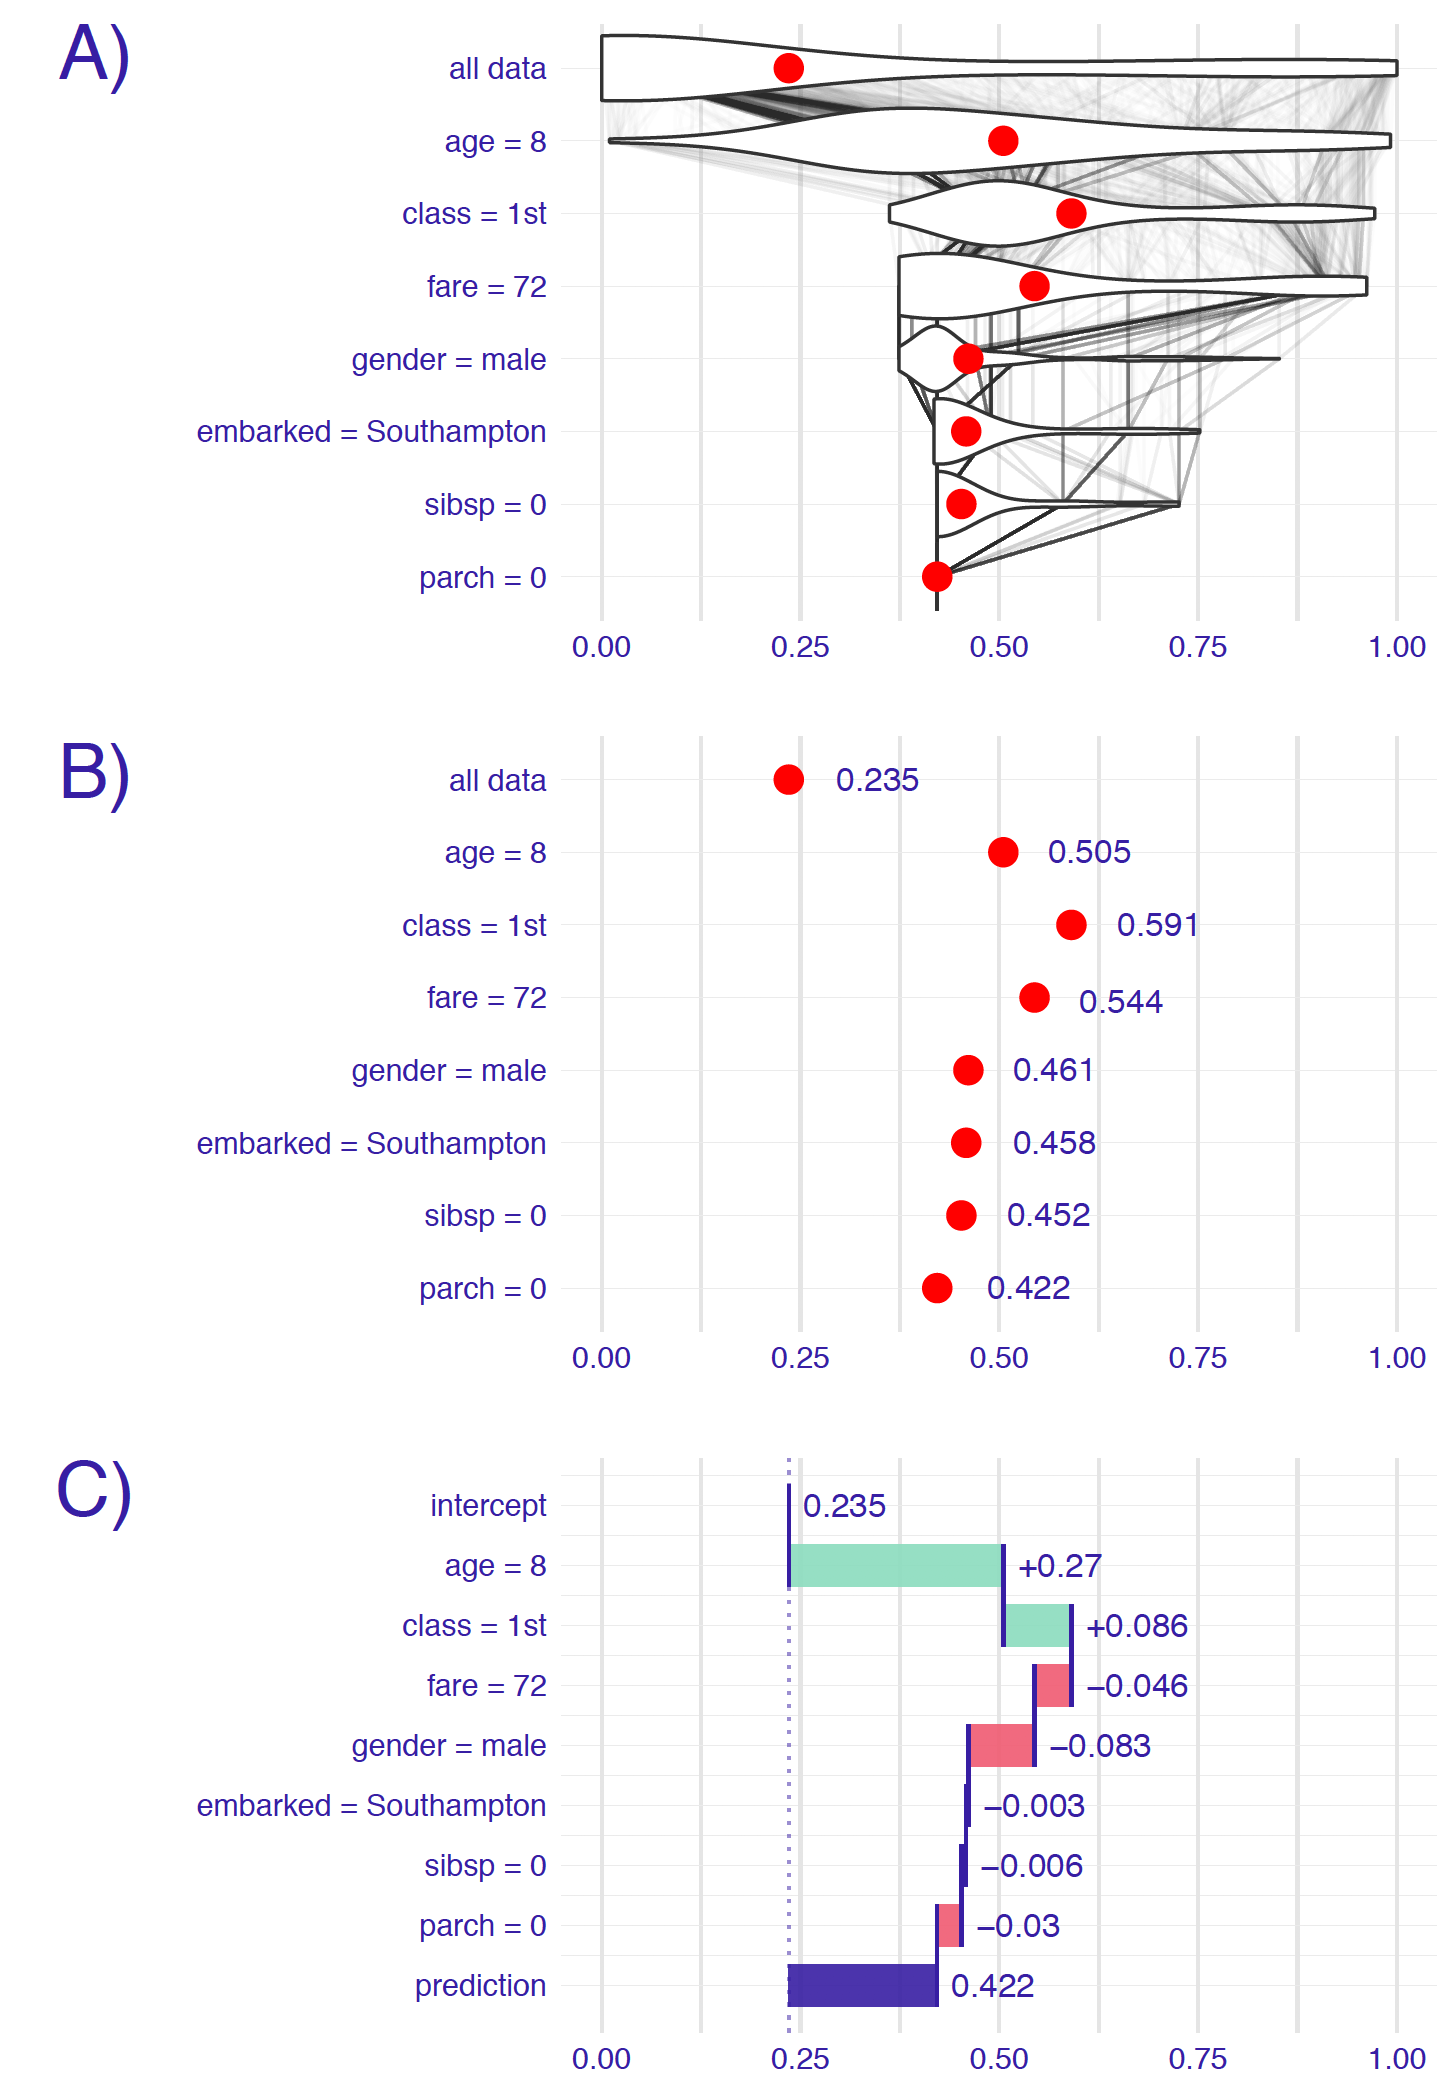 Break-down plots show how the contributions attributed to individual explanatory variables change the mean model's prediction to yield the actual prediction for a particular single instance (observation). Panel A) The first row shows the distribution and the mean value (red dot) of the model's predictions for all data. The next rows show the distribution and the mean value of the predictions when fixing values of subsequent explanatory variables. The last row shows the prediction for the particular instance of interest. B) Red dots indicate the mean predictions from panel A. C) The green and red bars indicate, respectively, positive and negative changes in the mean predictions (contributions attributed to explanatory variables).